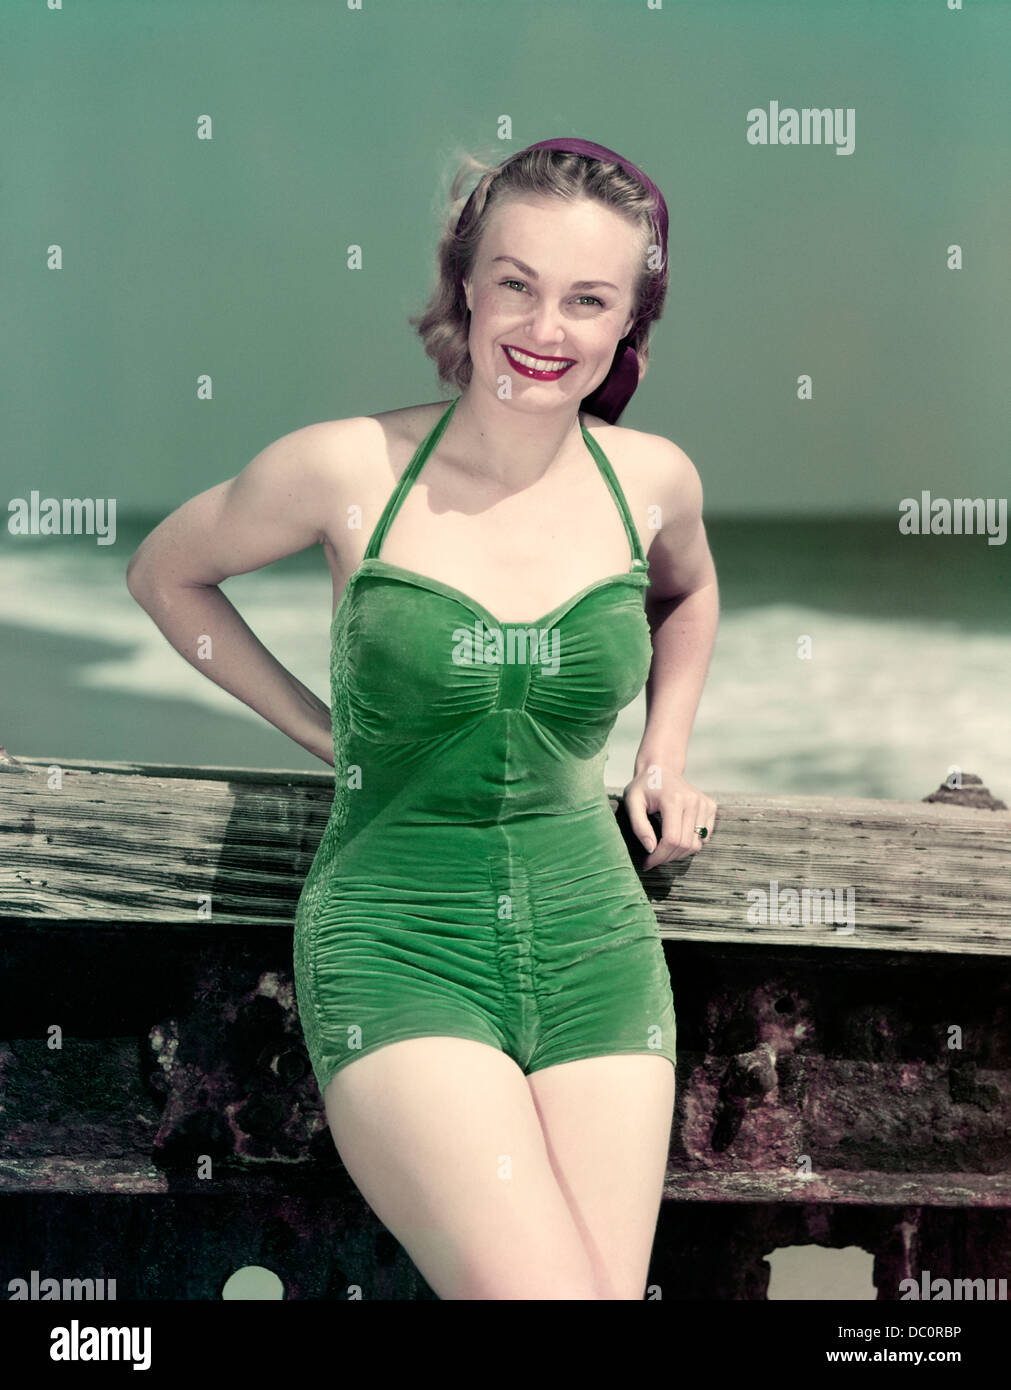 1940s PORTRAIT SMILING WOMAN WEARING GREEN VELVET BATHING SUIT POSING LEANING ON DIVING BOARD - Stock Image